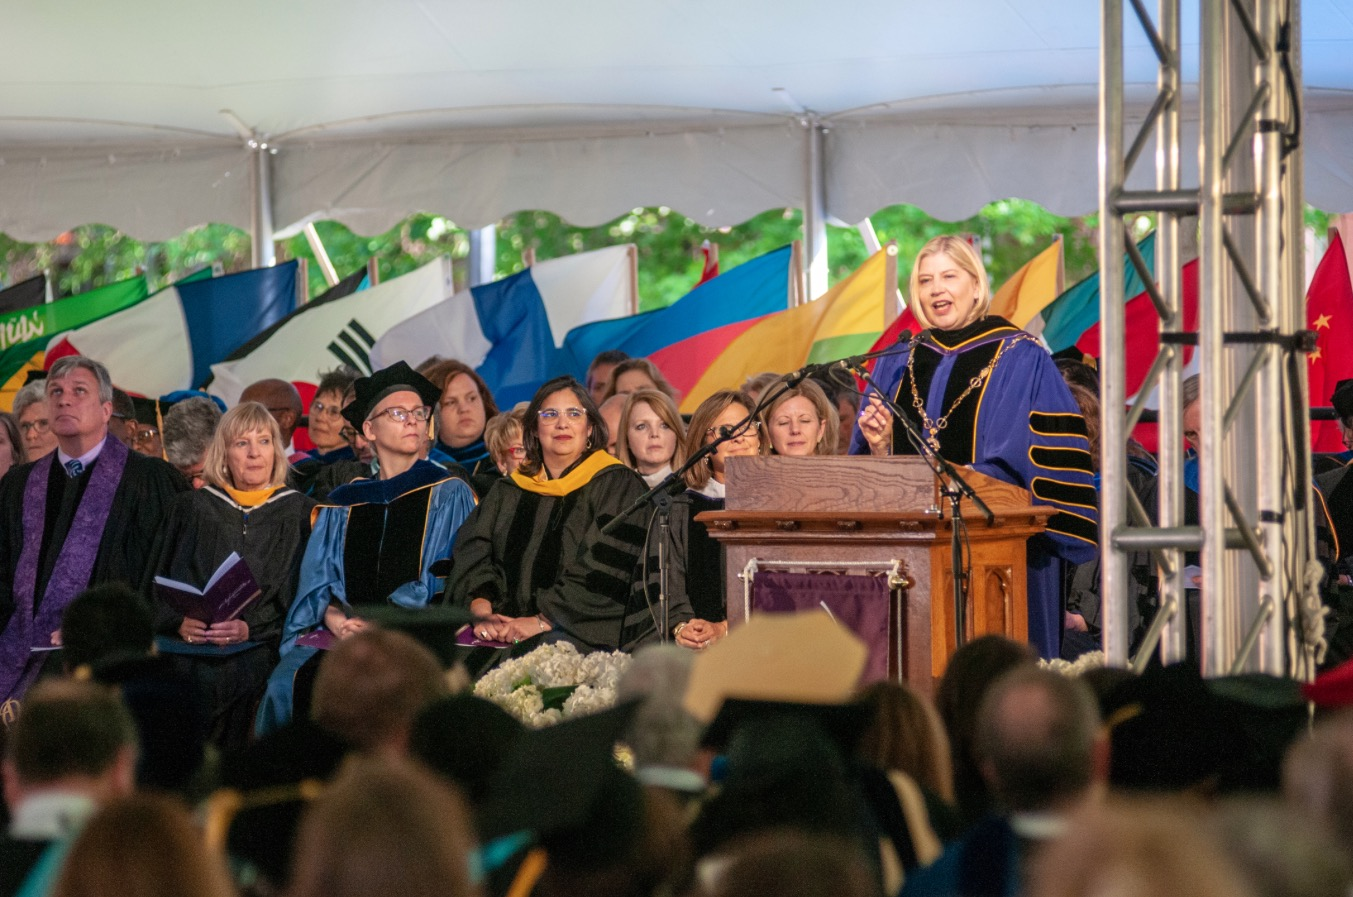 Leocadia Zak at the podium on her inauguration day as president of Agnes Scott College, April 26, 2019. Credit: Courtesy Agnes Scott College/Photographer Tom Meyer